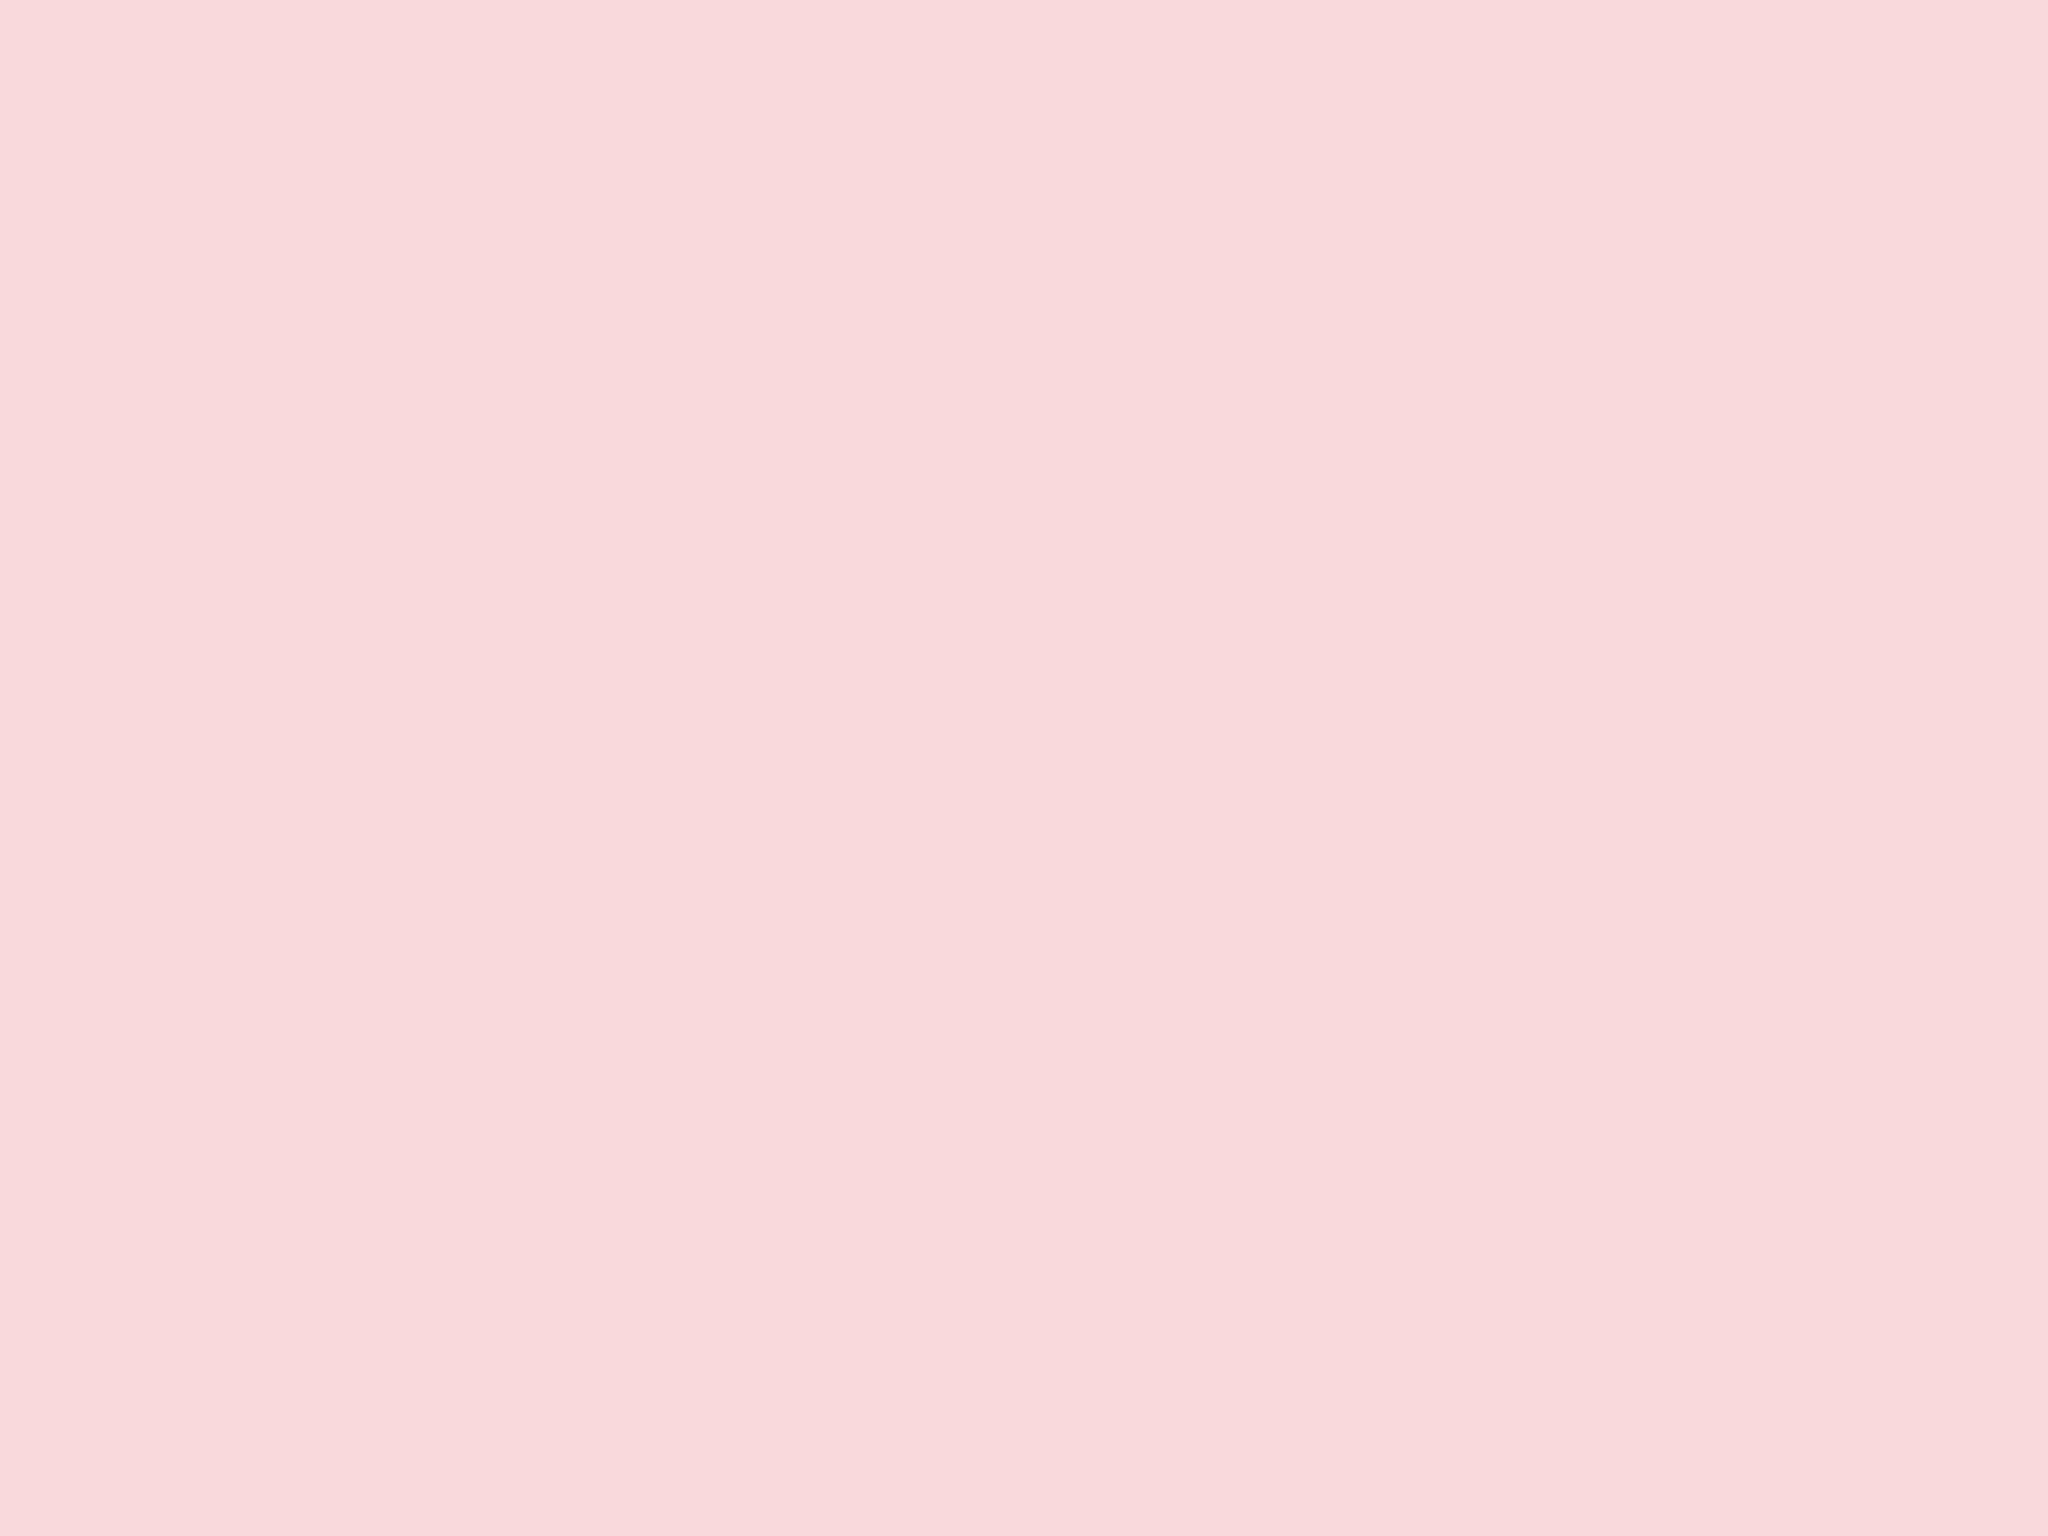 2048x1536 Pale Pink Solid Color Background